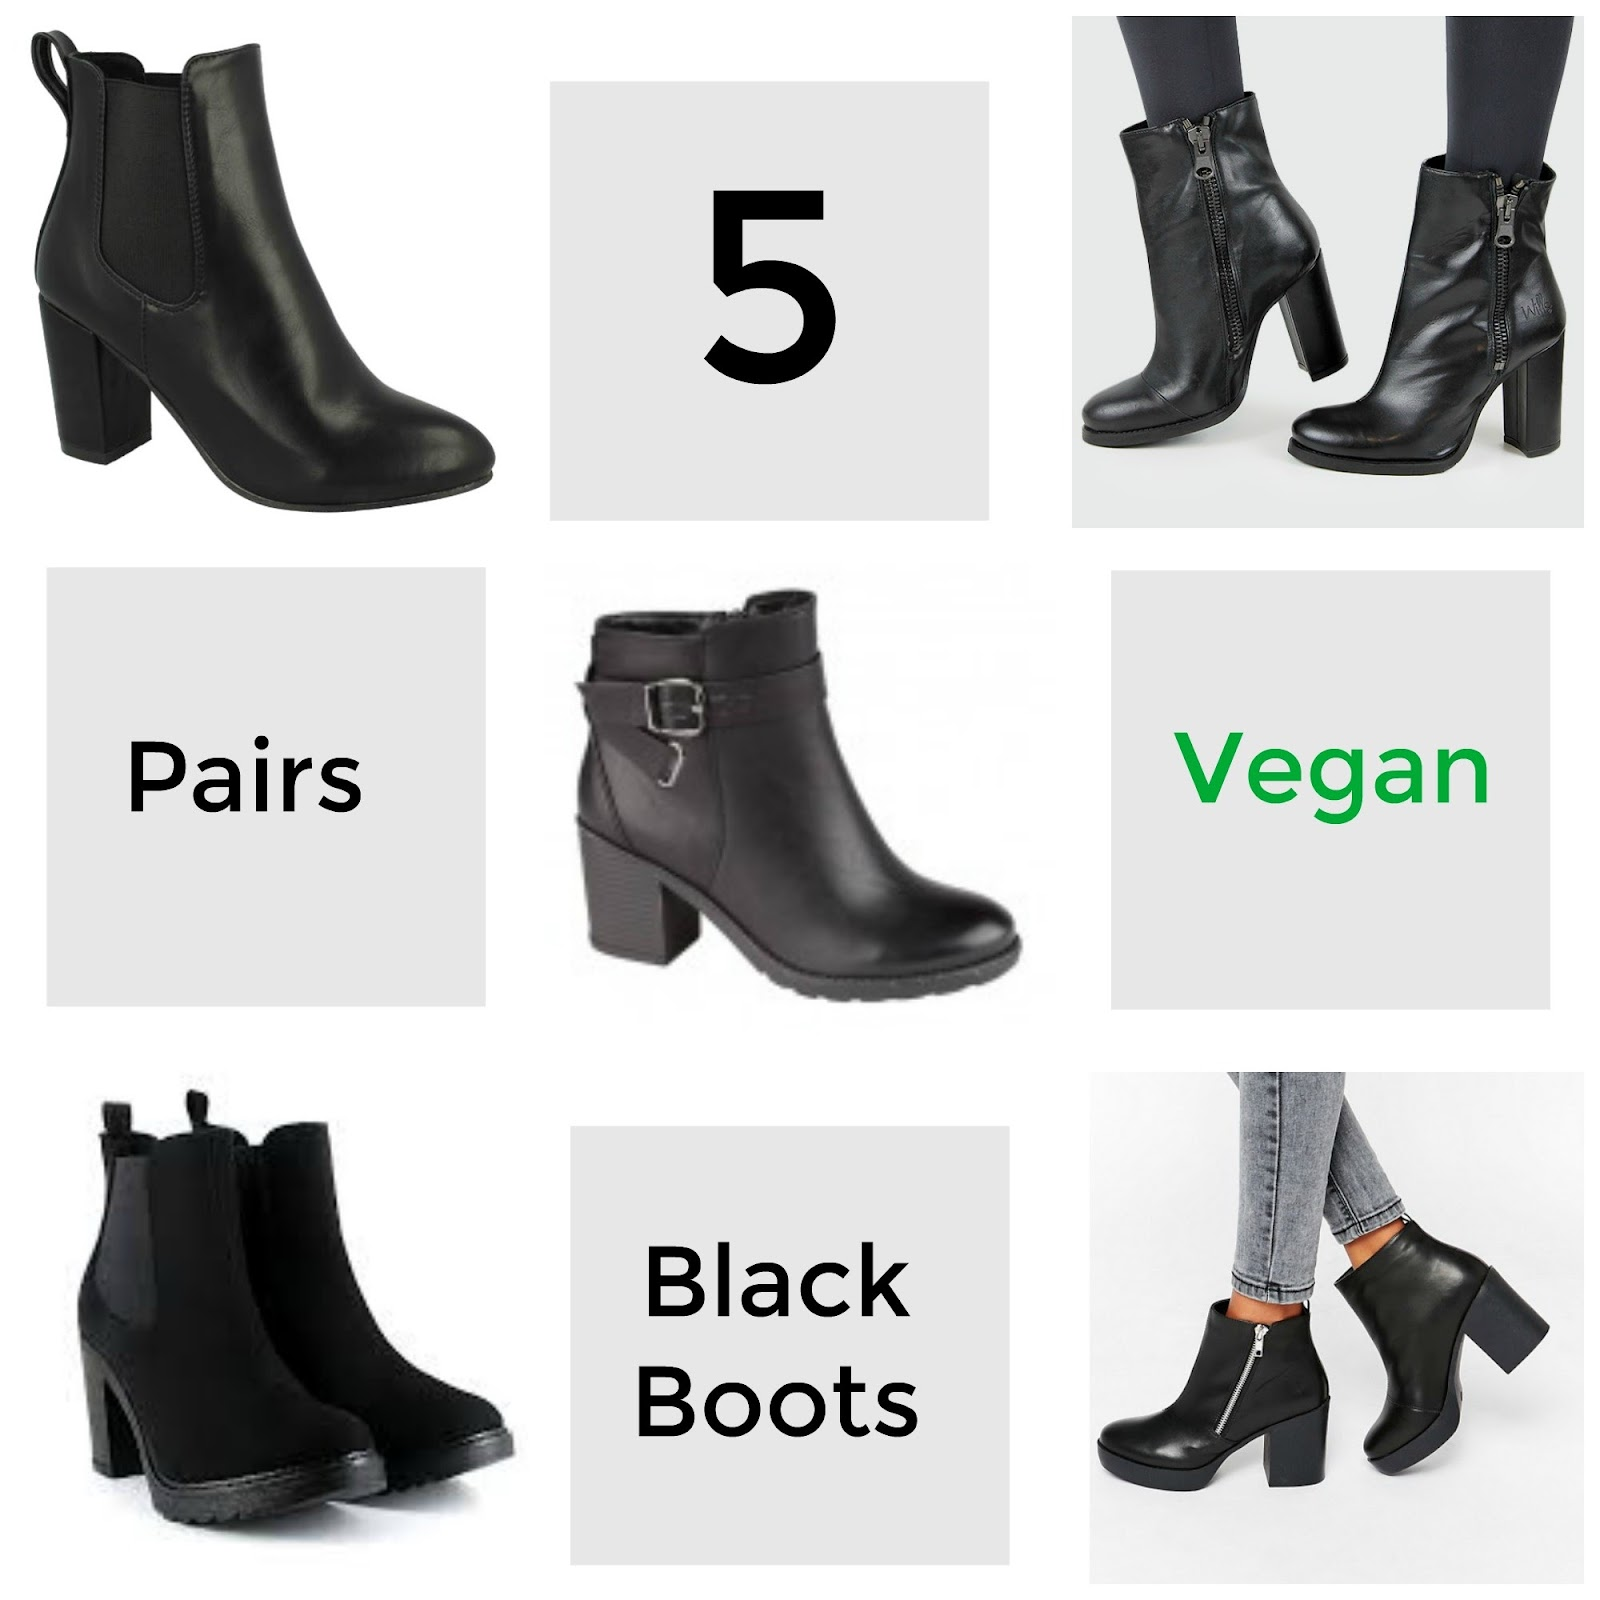 , Style: Five Pairs of Vegan Black Ankle Boots